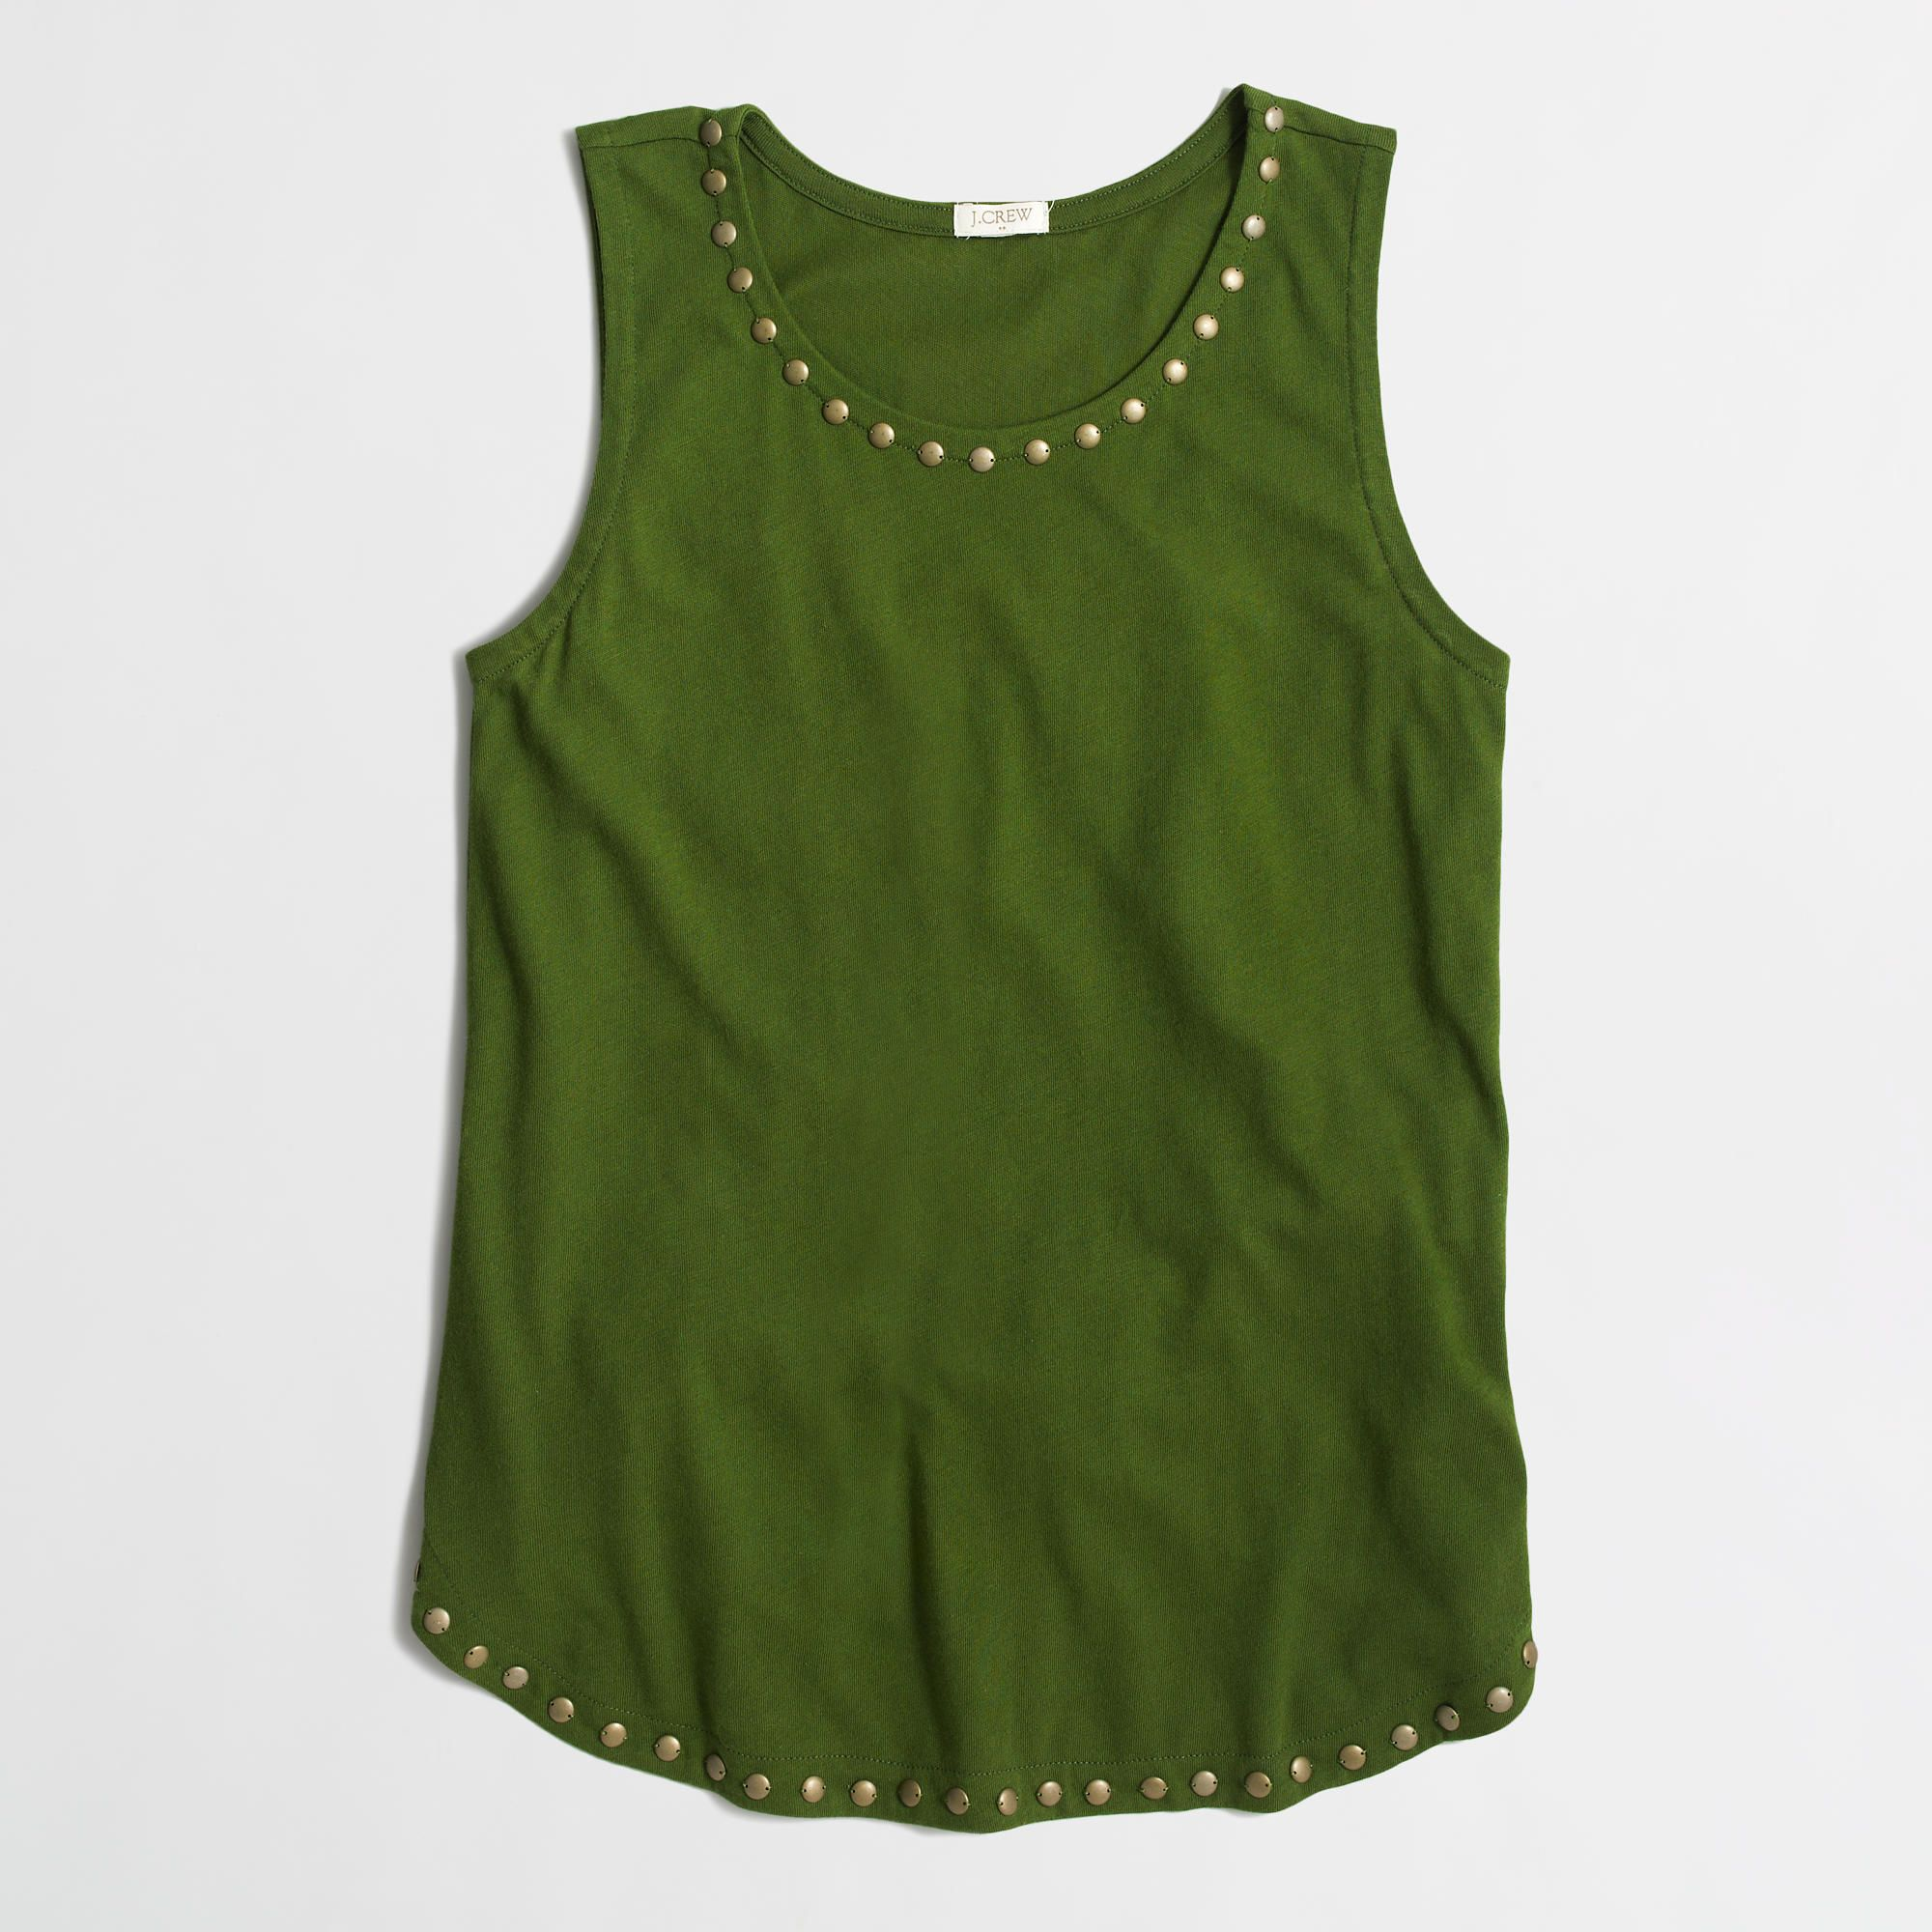 Factory embellished airy cotton tank top : Outfit Ideas | J.Crew Factory